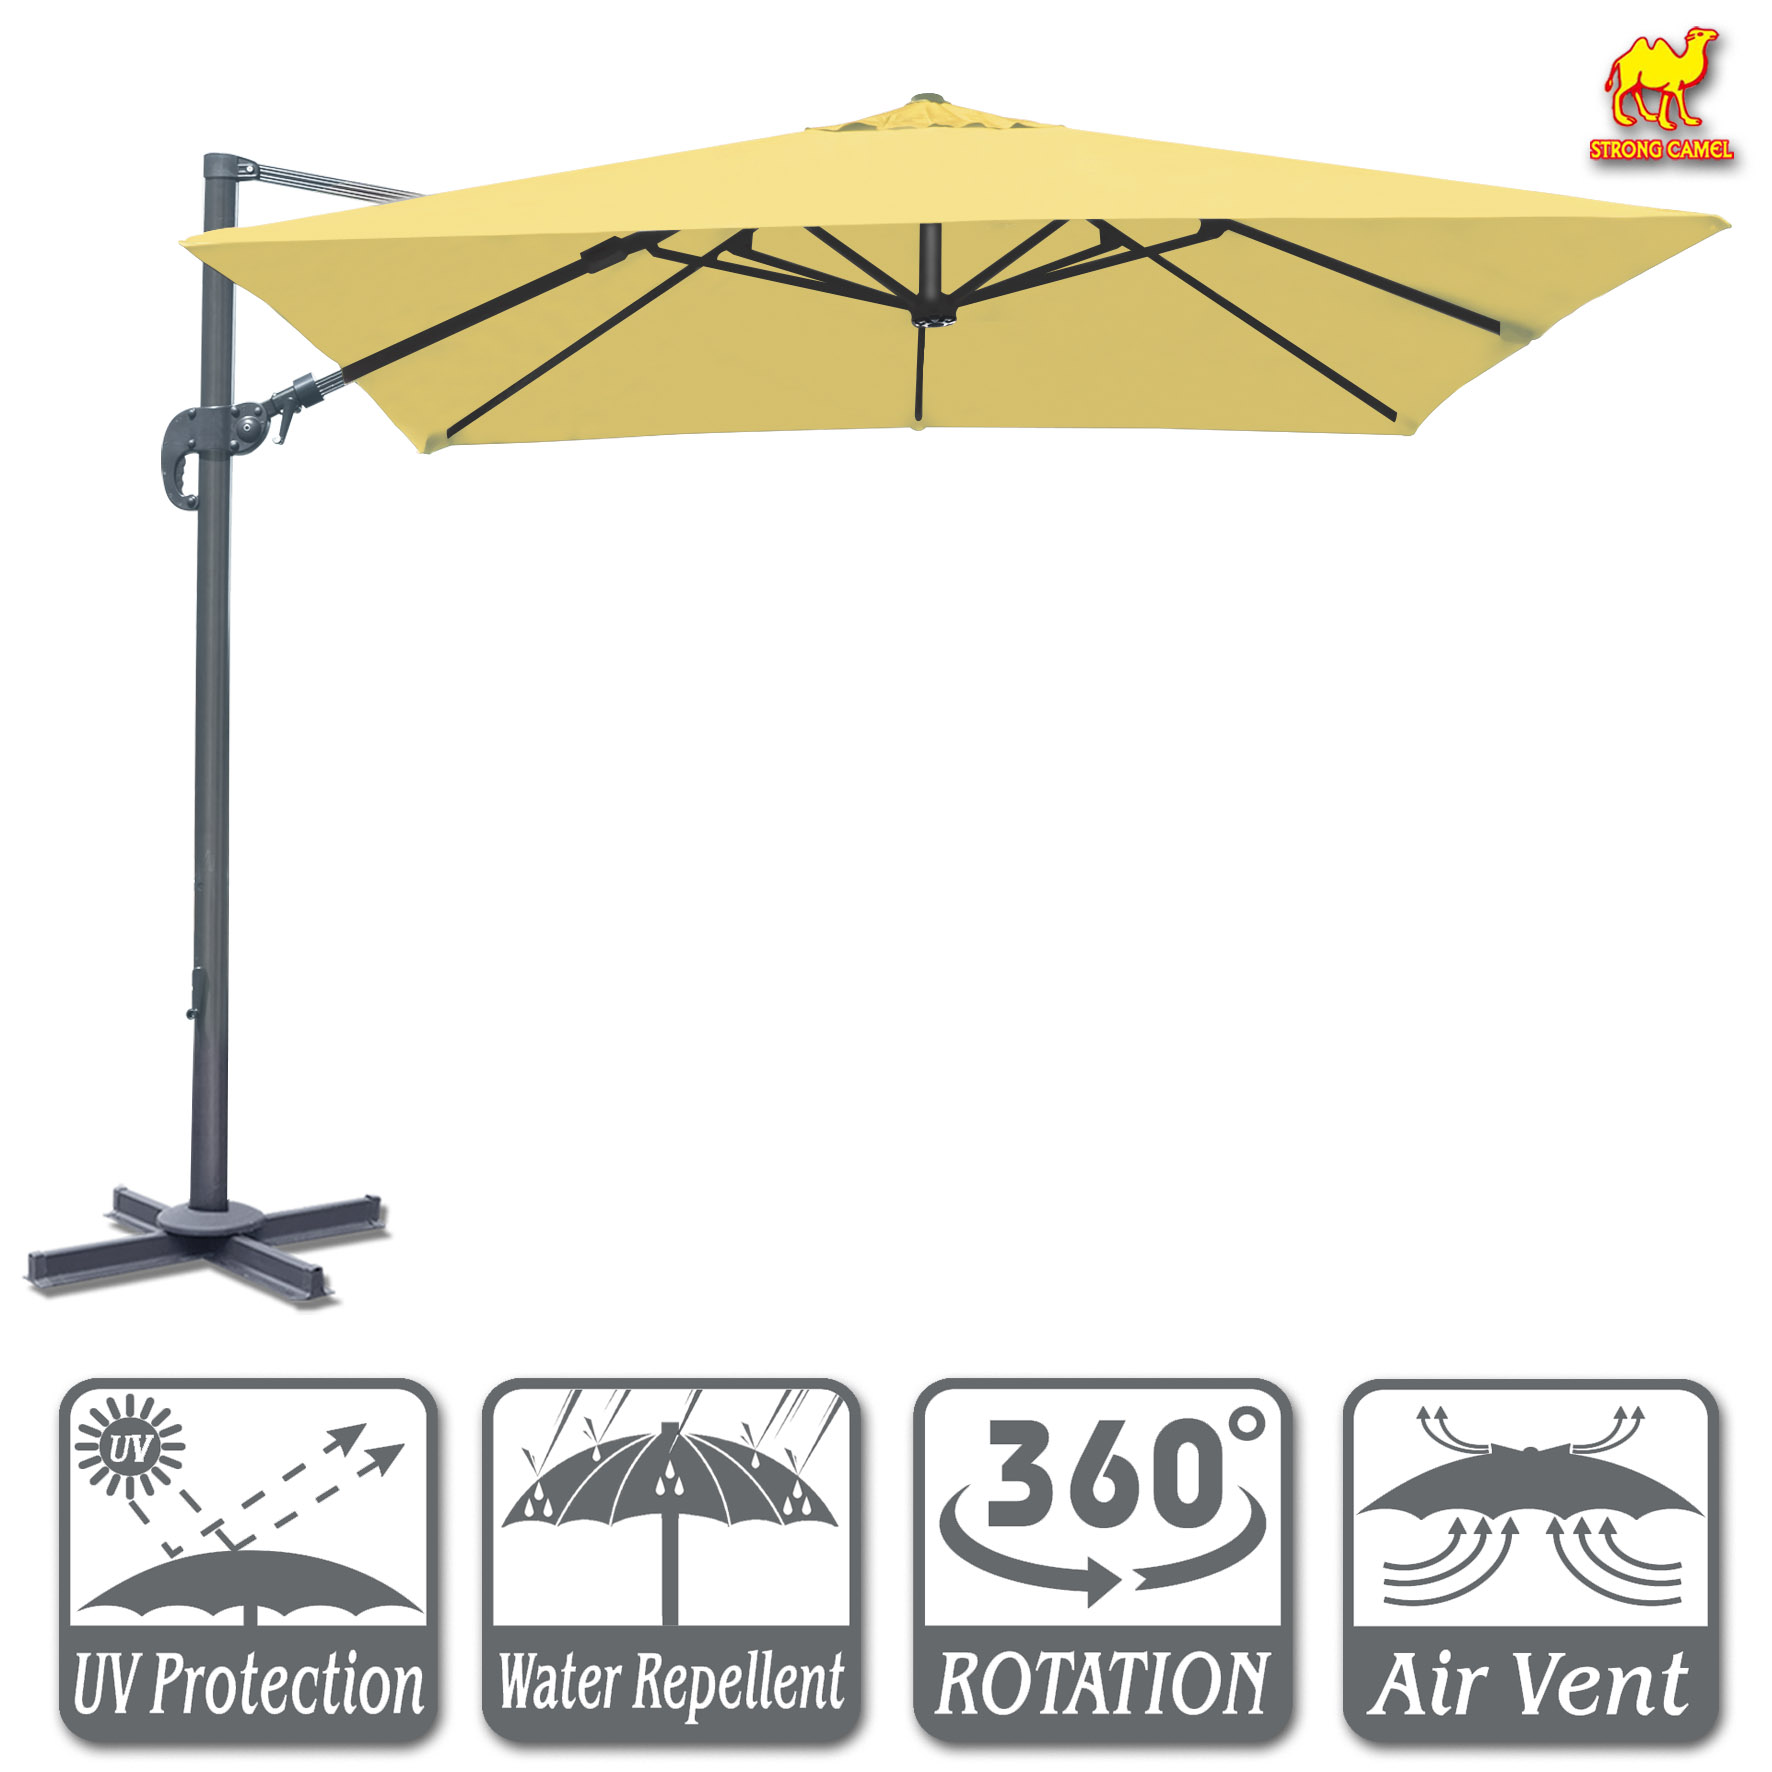 Strong Camel 10'x10' Off-Set Hanging Roma Umbrella Deluxe Patio Umbrella Tilt & 360 Rotation Patio Heavyduty Outdoor Sunshade Cantilever Crank(Steel Cross Base is Included)